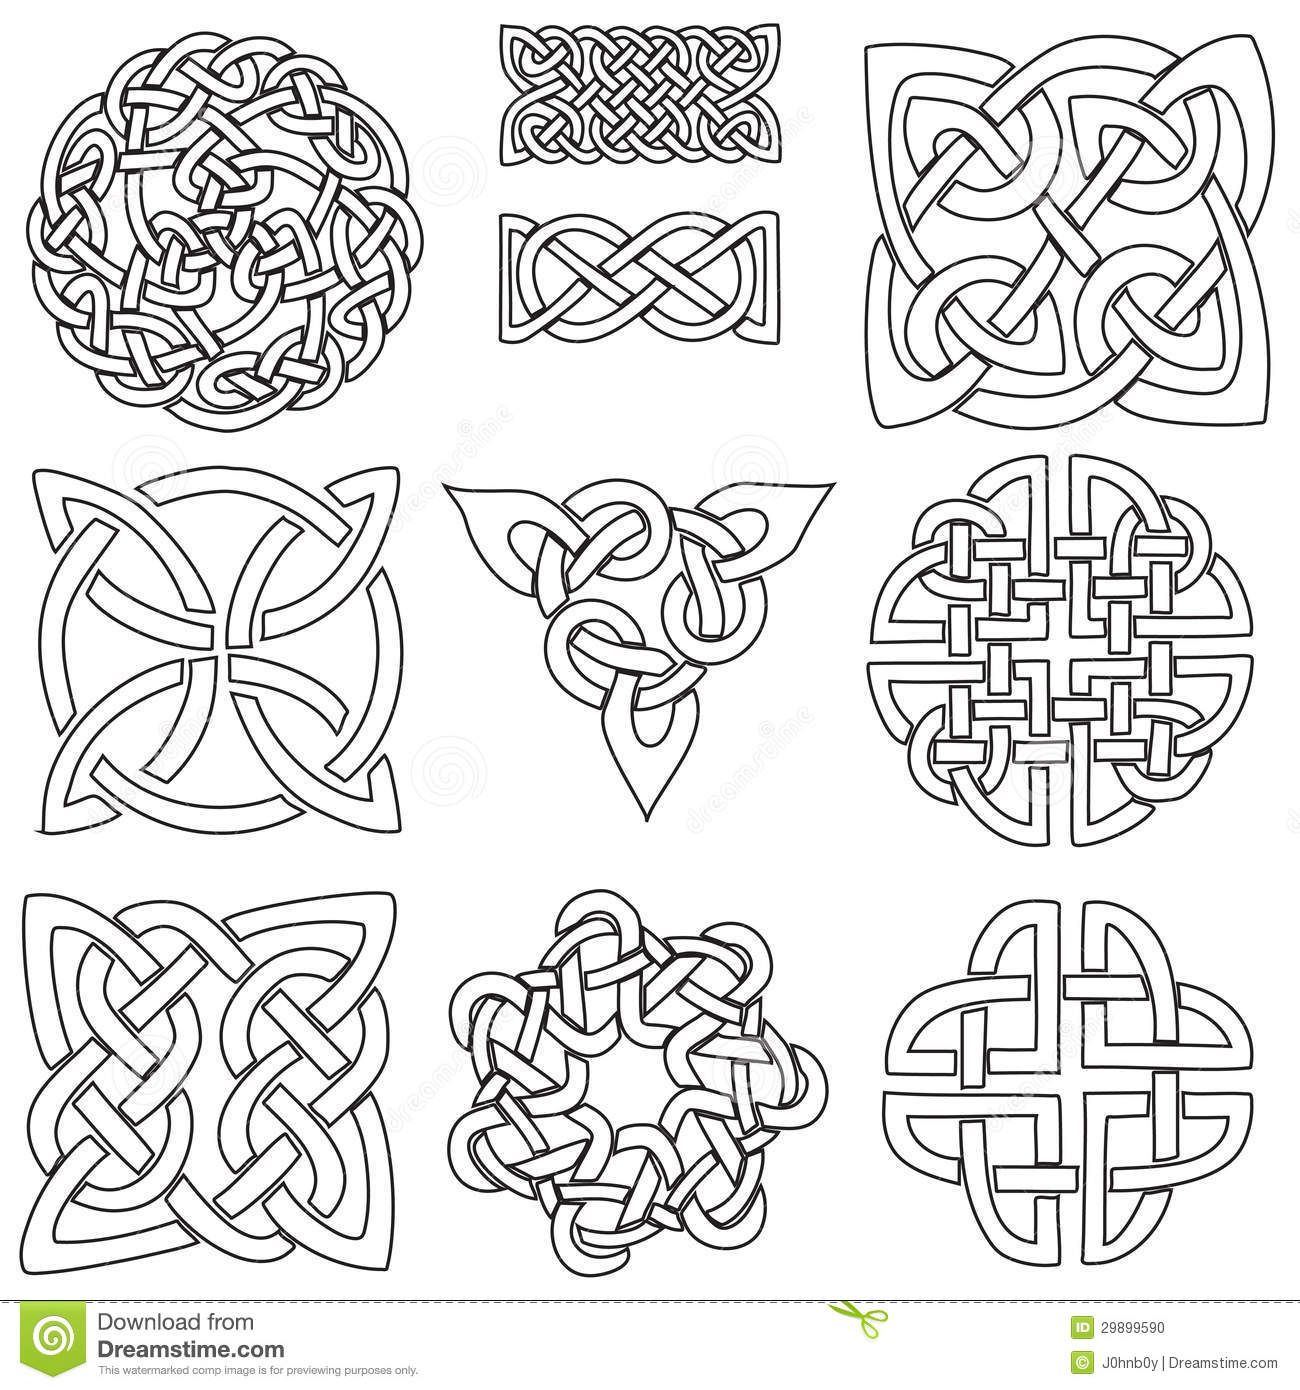 Celtic symbols stock vector illustration of abstract 29899590 celtic symbols buycottarizona Image collections